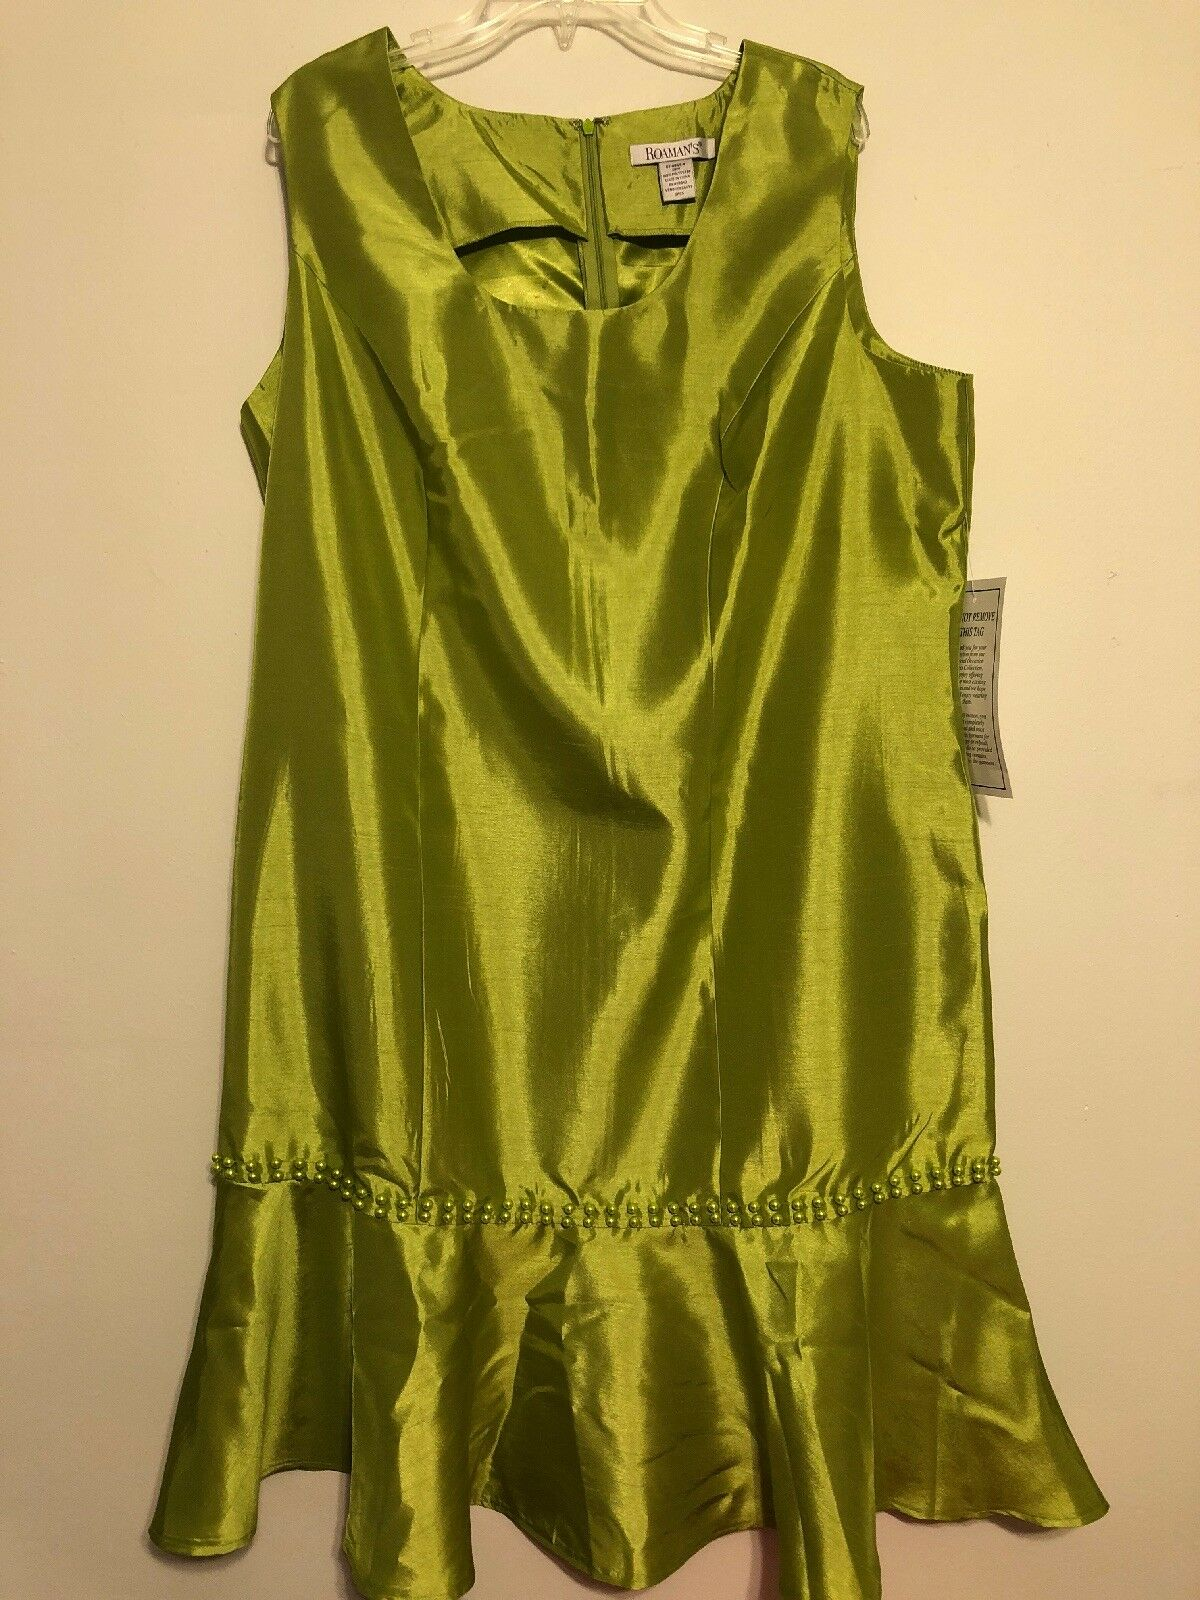 Womens Roamans New Green Two Piece Suit Size 20W